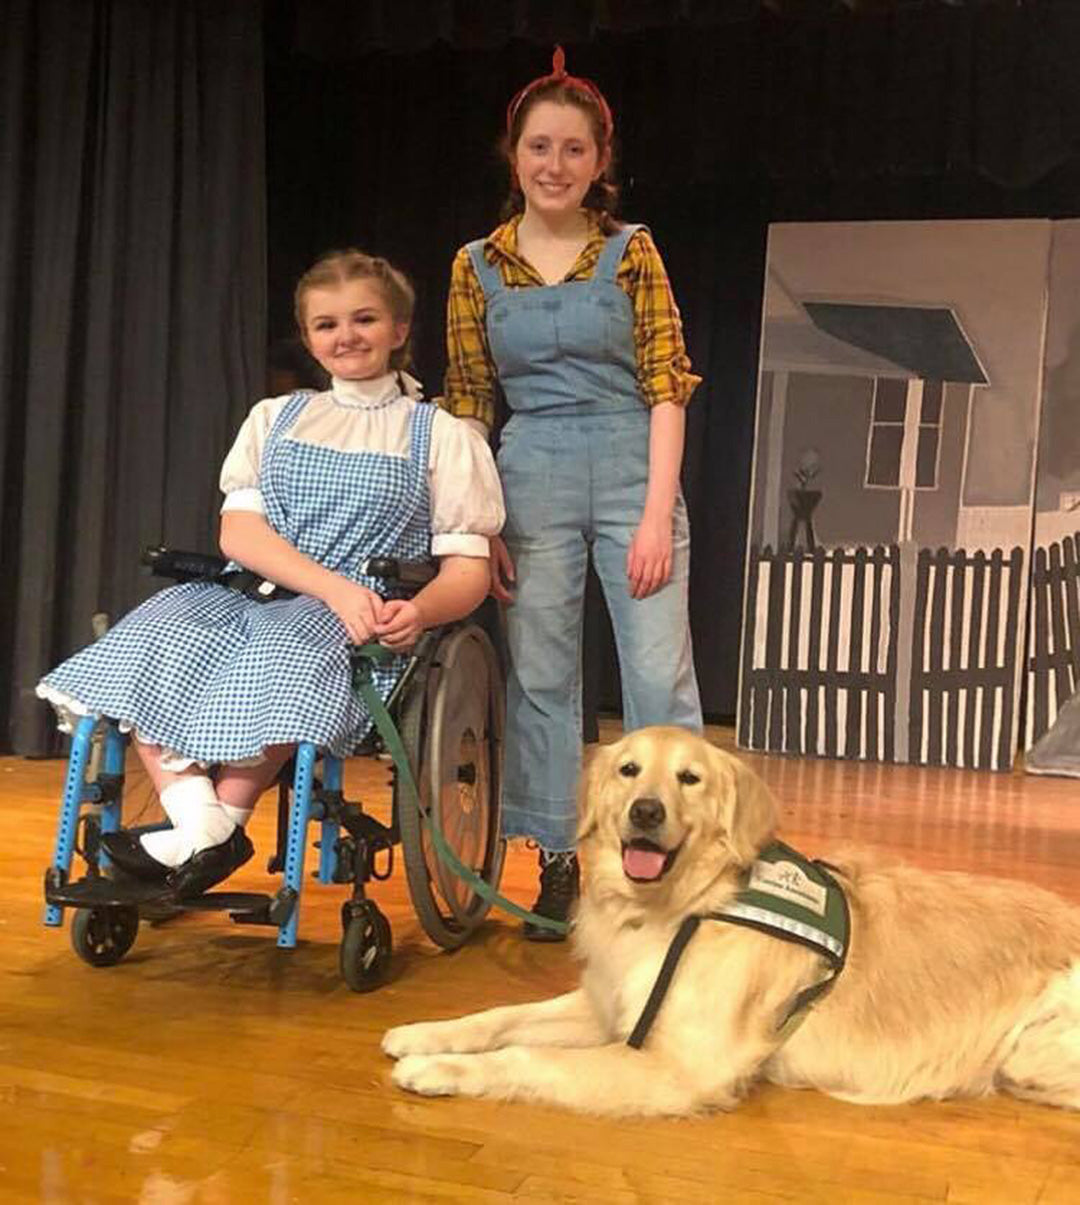 Service Dog Takes The Stage as Toto in High School Production of 'The Wizard of Oz'